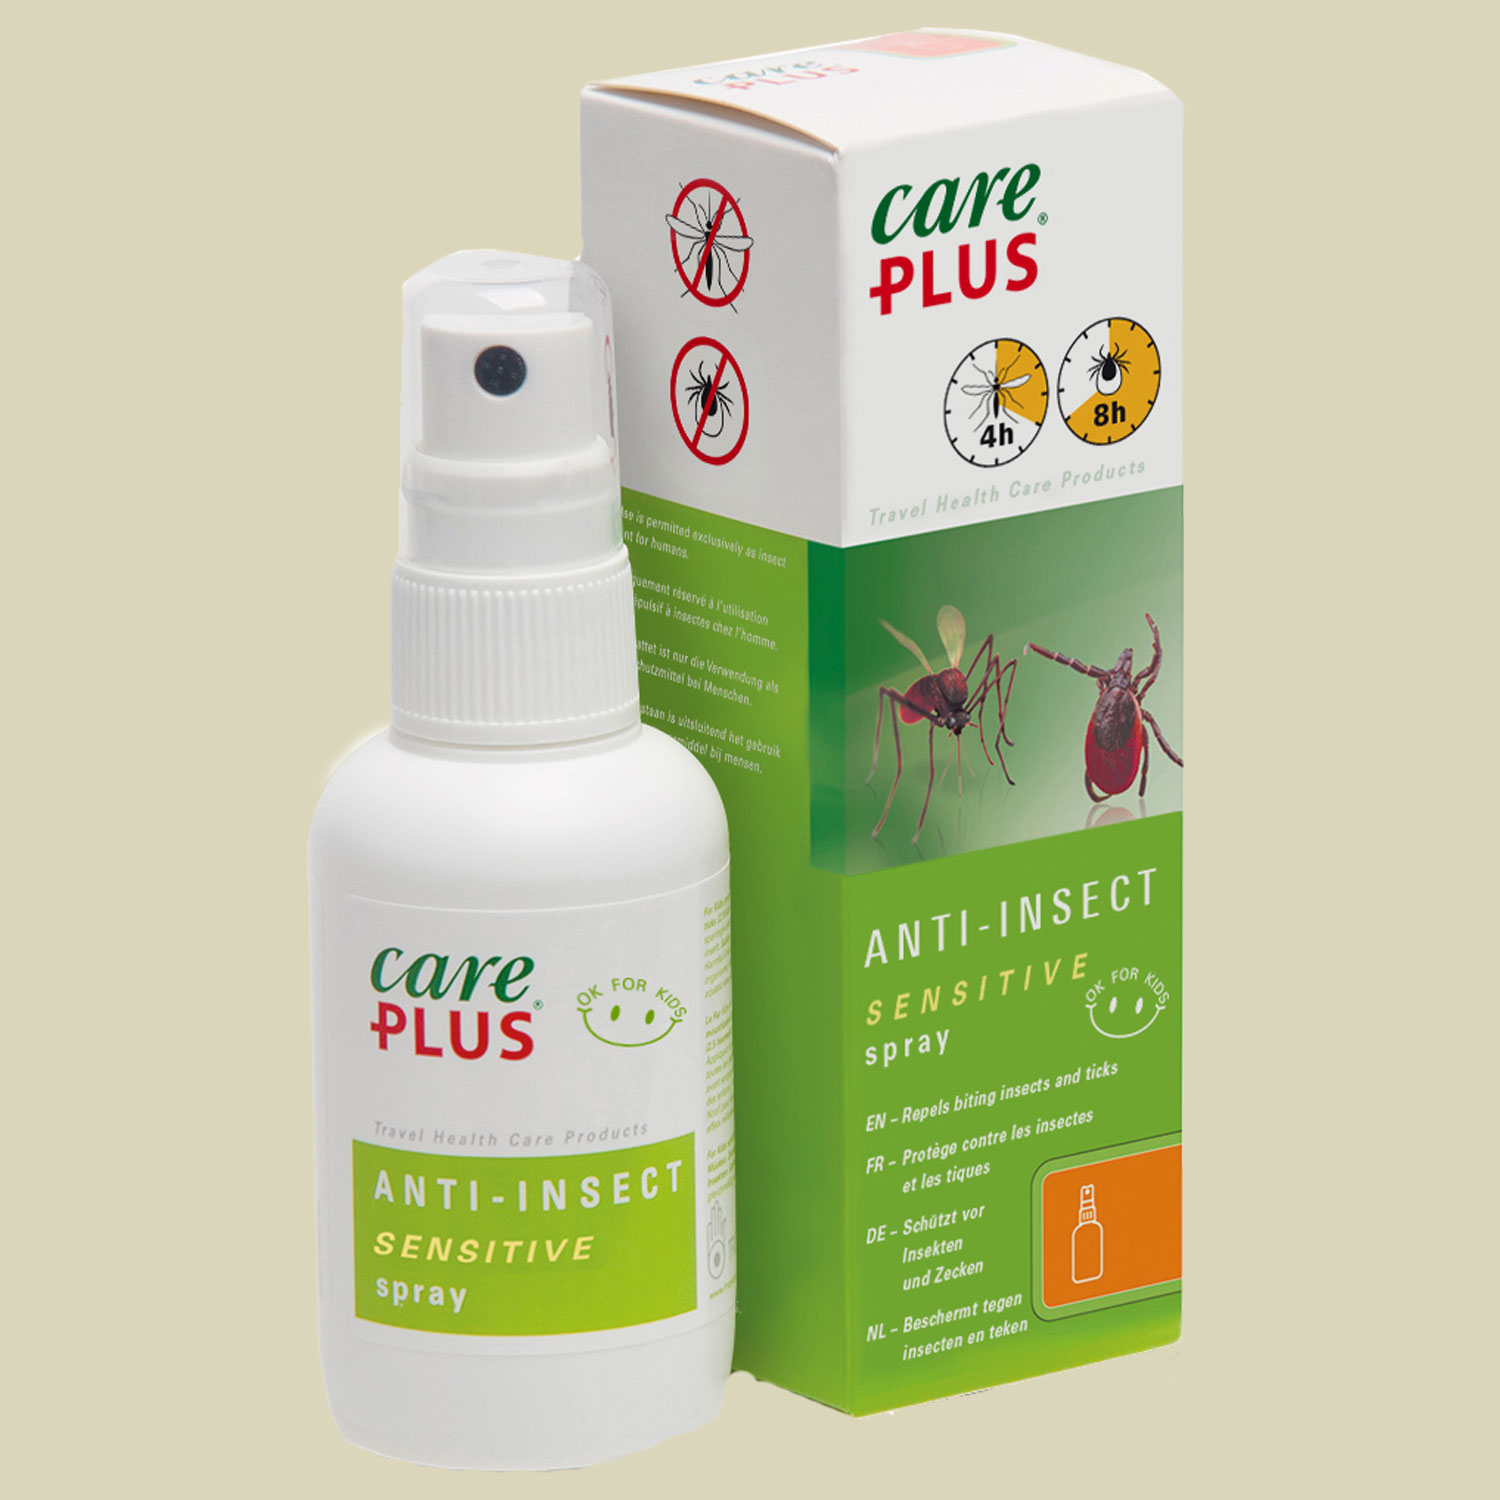 Tropicare Care Plus Anti-Insect Sensitiv Spray 60 ml Insektenspray von Tropicare